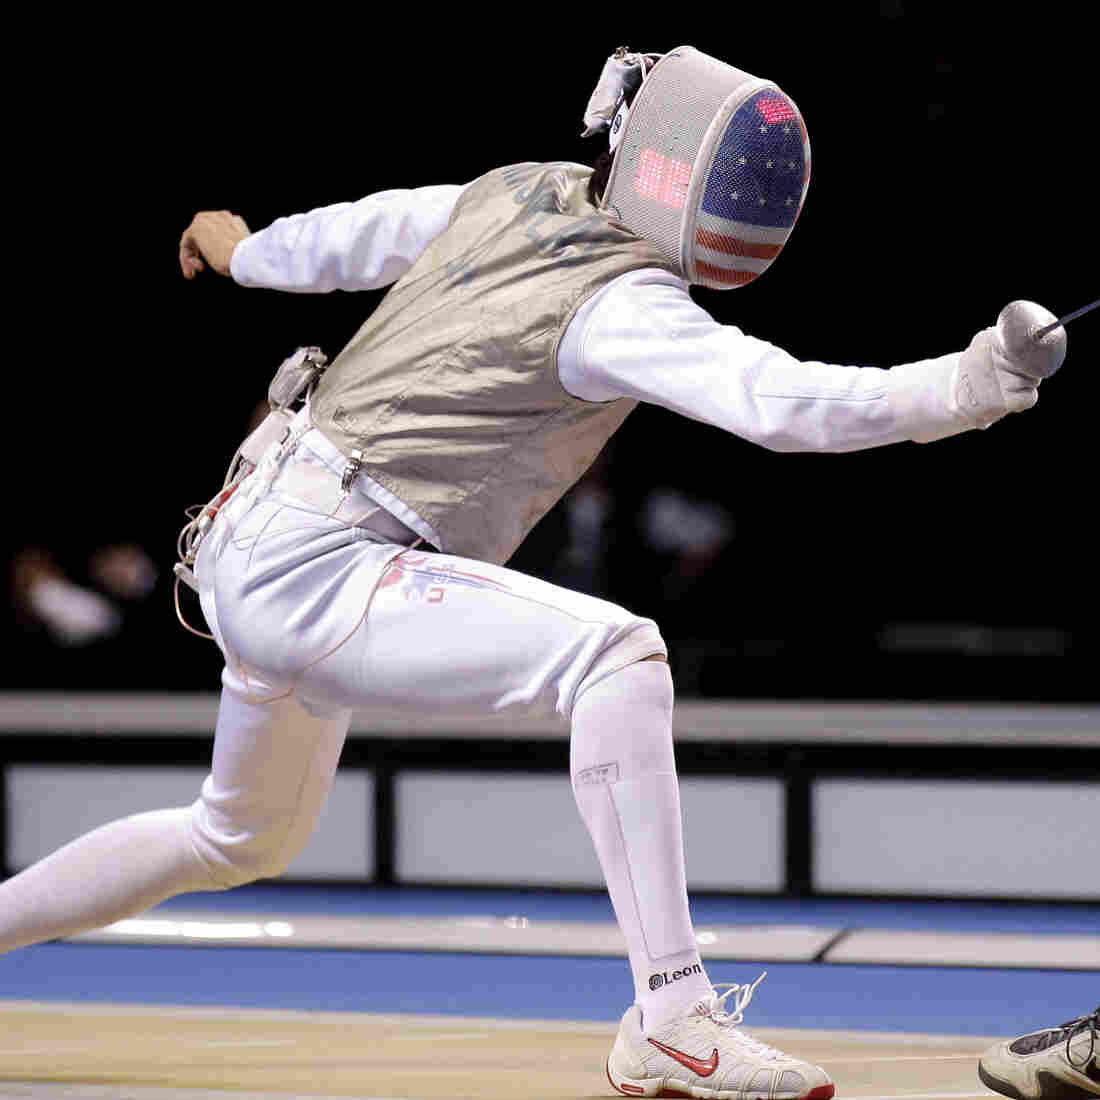 Alexander Massialas (left) lands a touch on Britain's Keith Cook during last year's Fencing International Invitation in London.